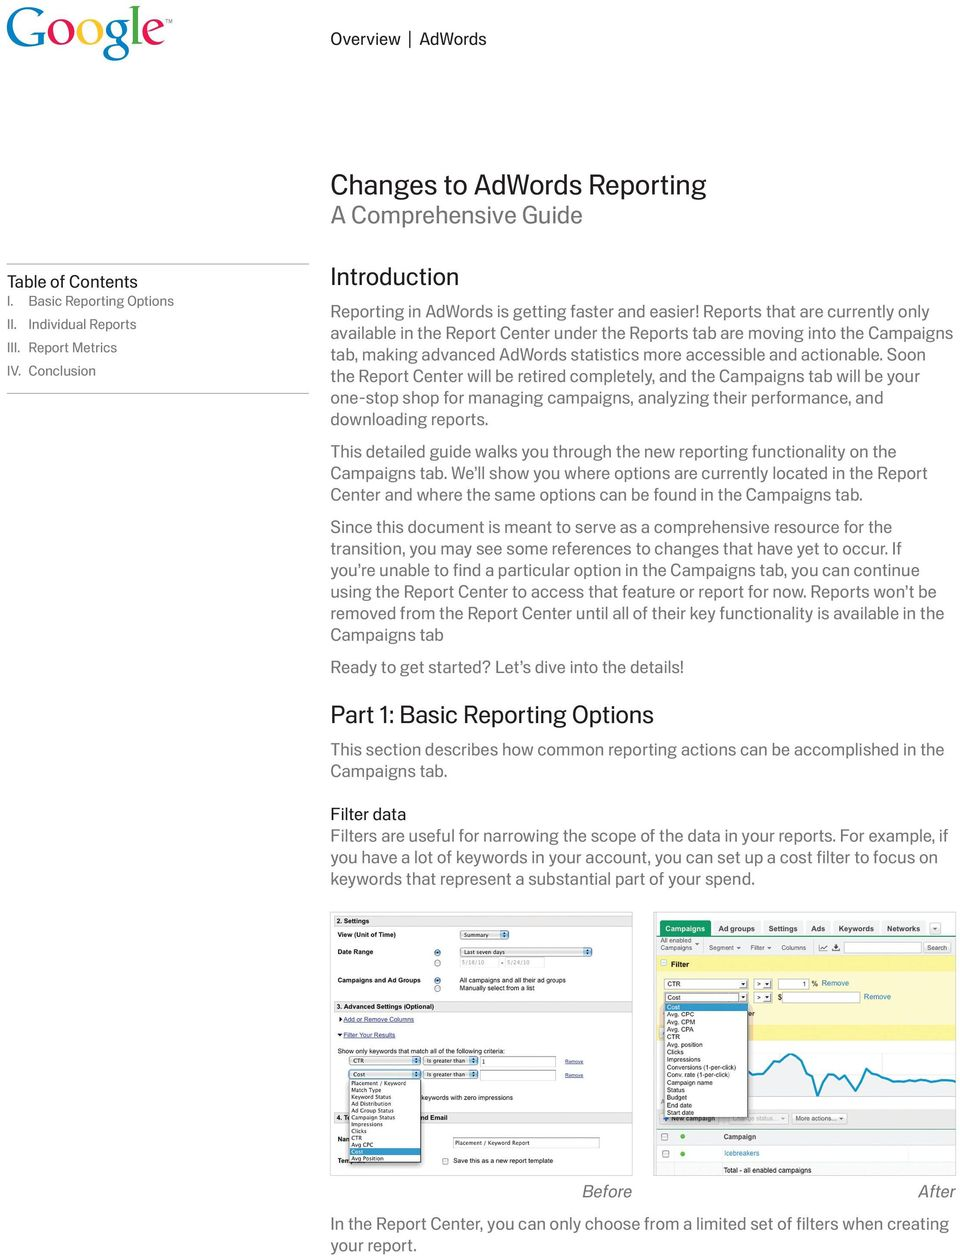 Reports that are currently only available in the Report Center under the Reports tab are moving into the Campaigns tab, making advanced AdWords statistics more accessible and actionable.